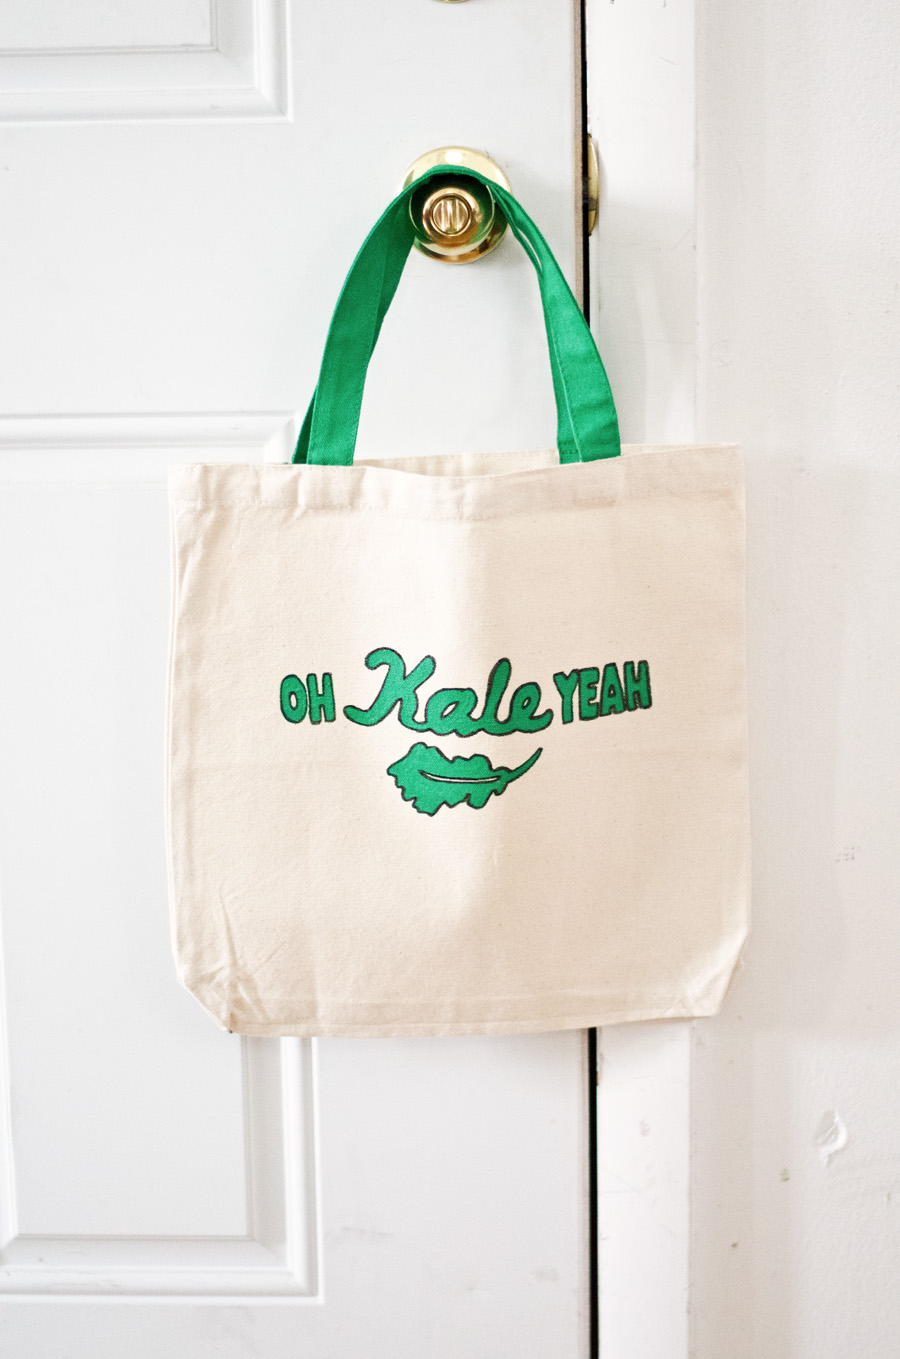 West Elm Inspired Kale Tote